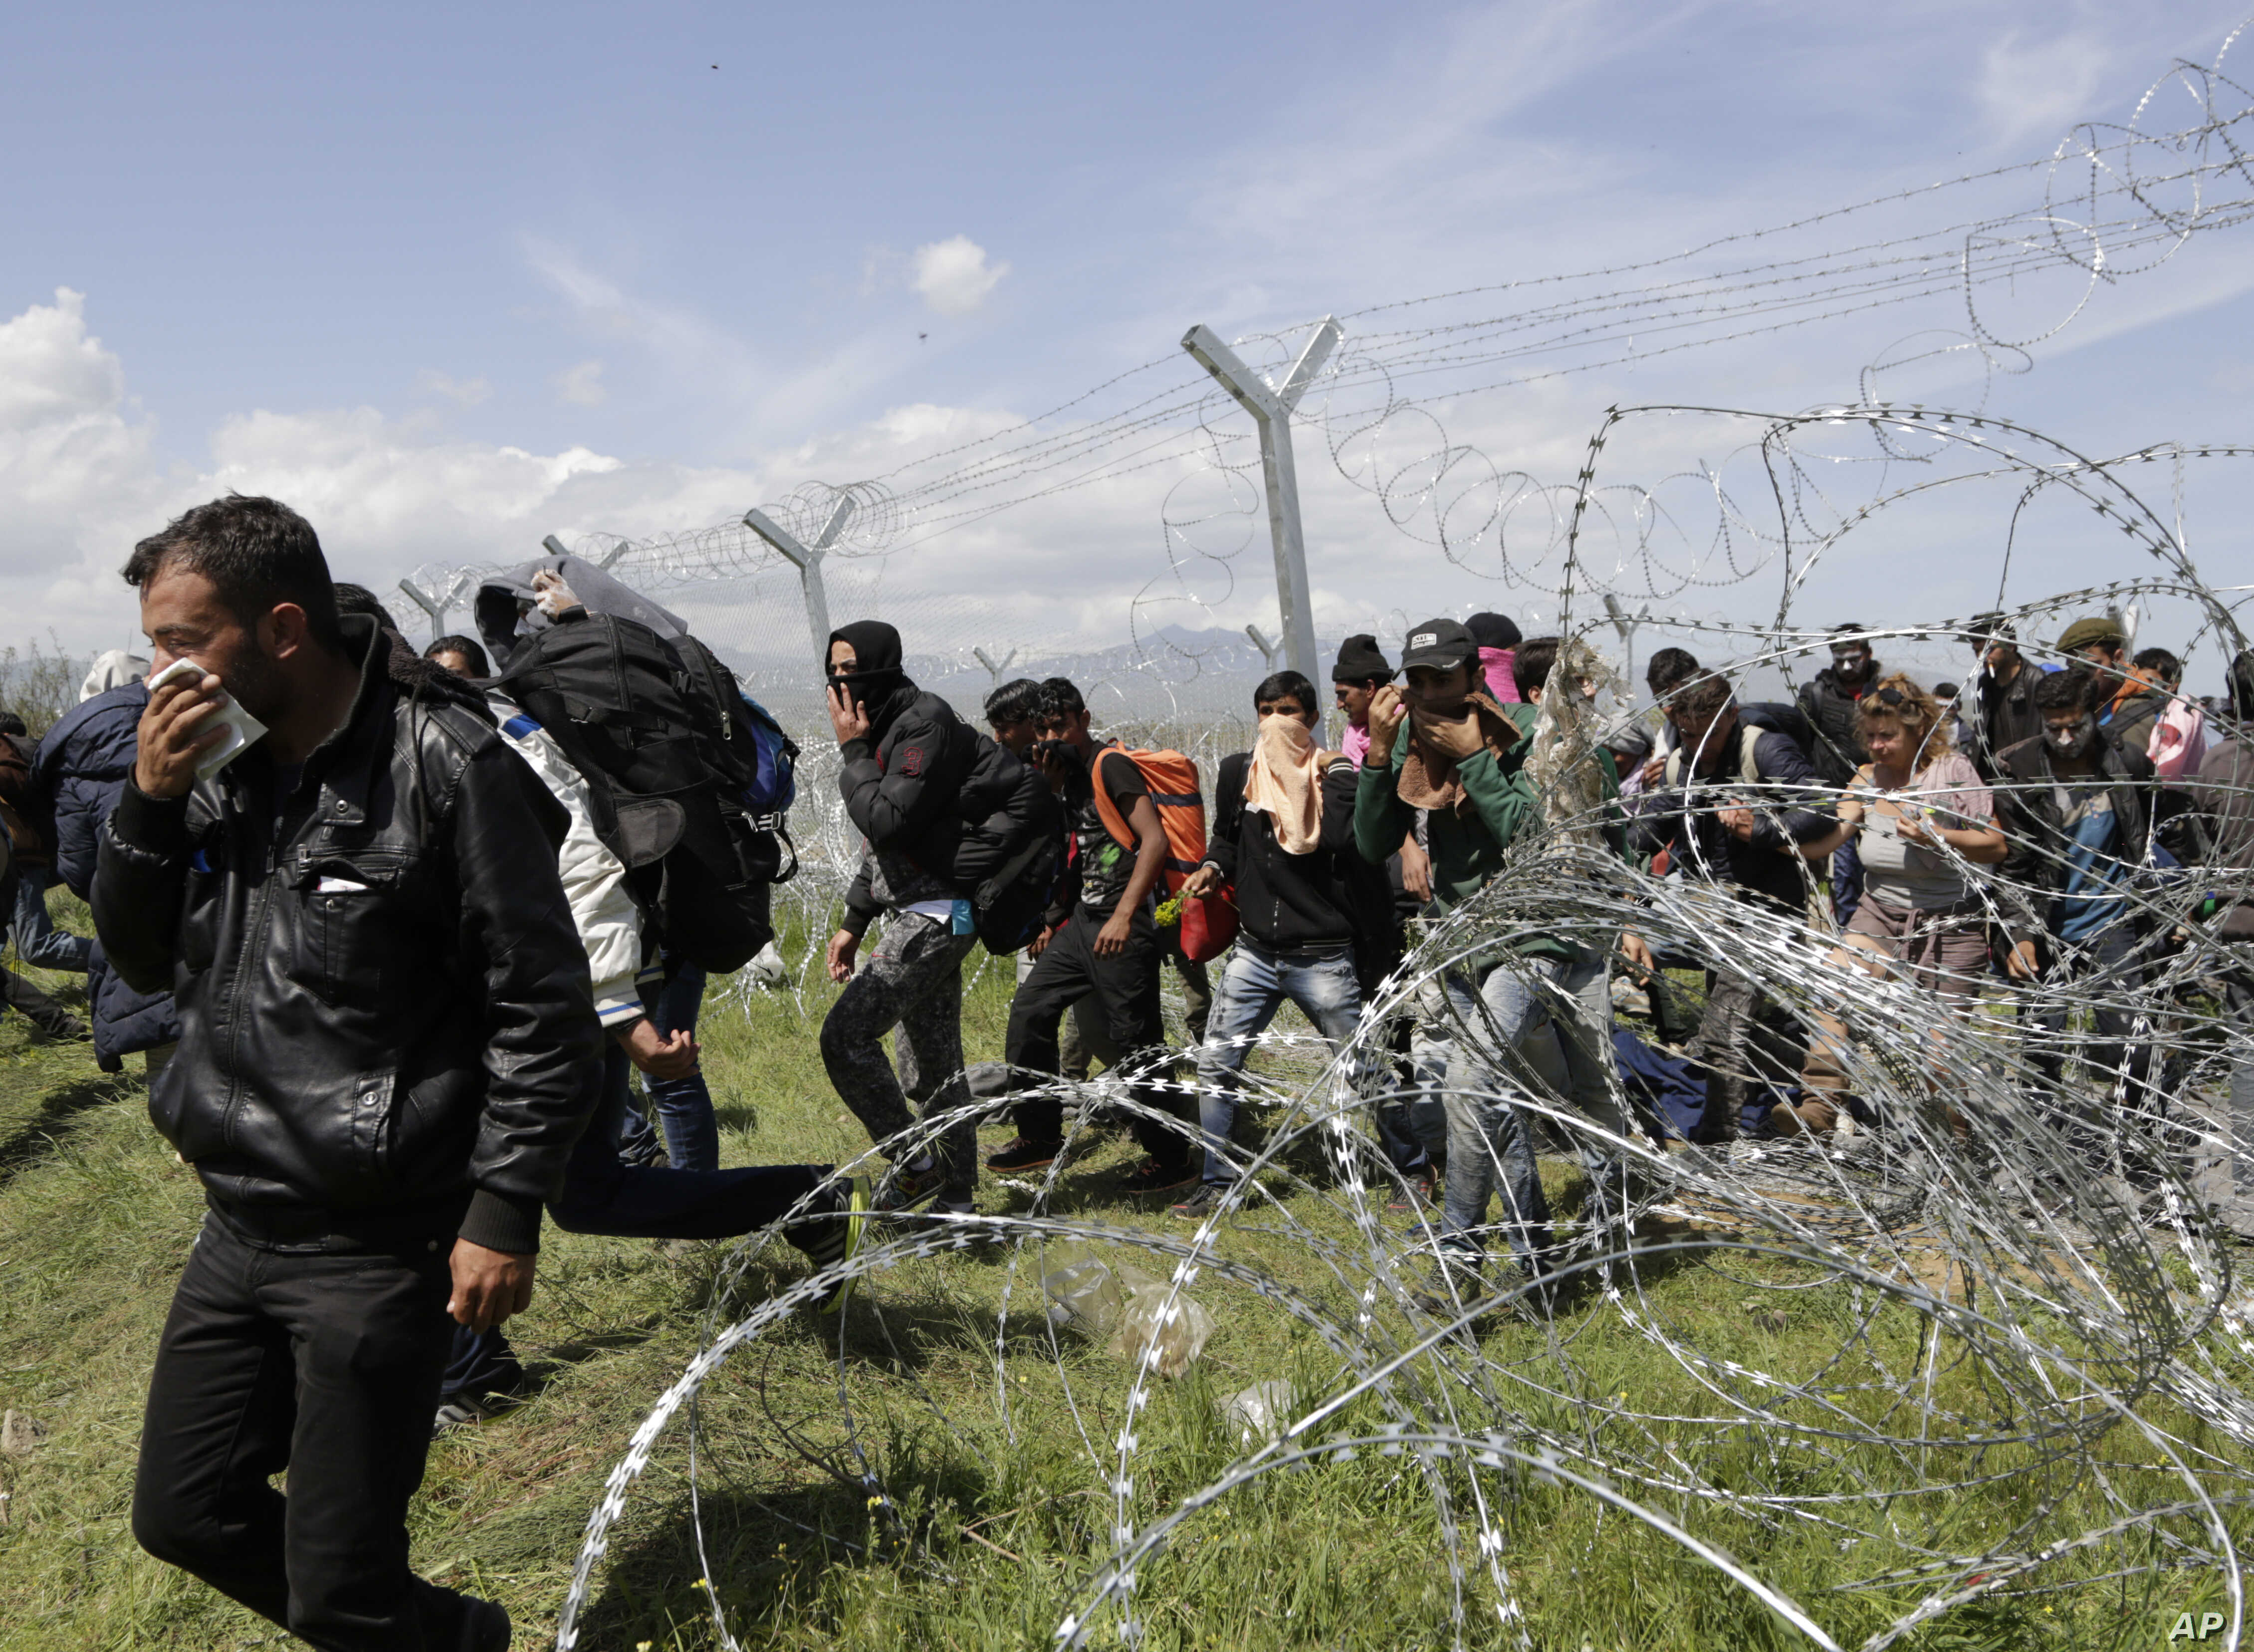 Migransts exit through a broken fence after a protest at the northern Greek border point of Idomeni, Greece, April 10, 2016.